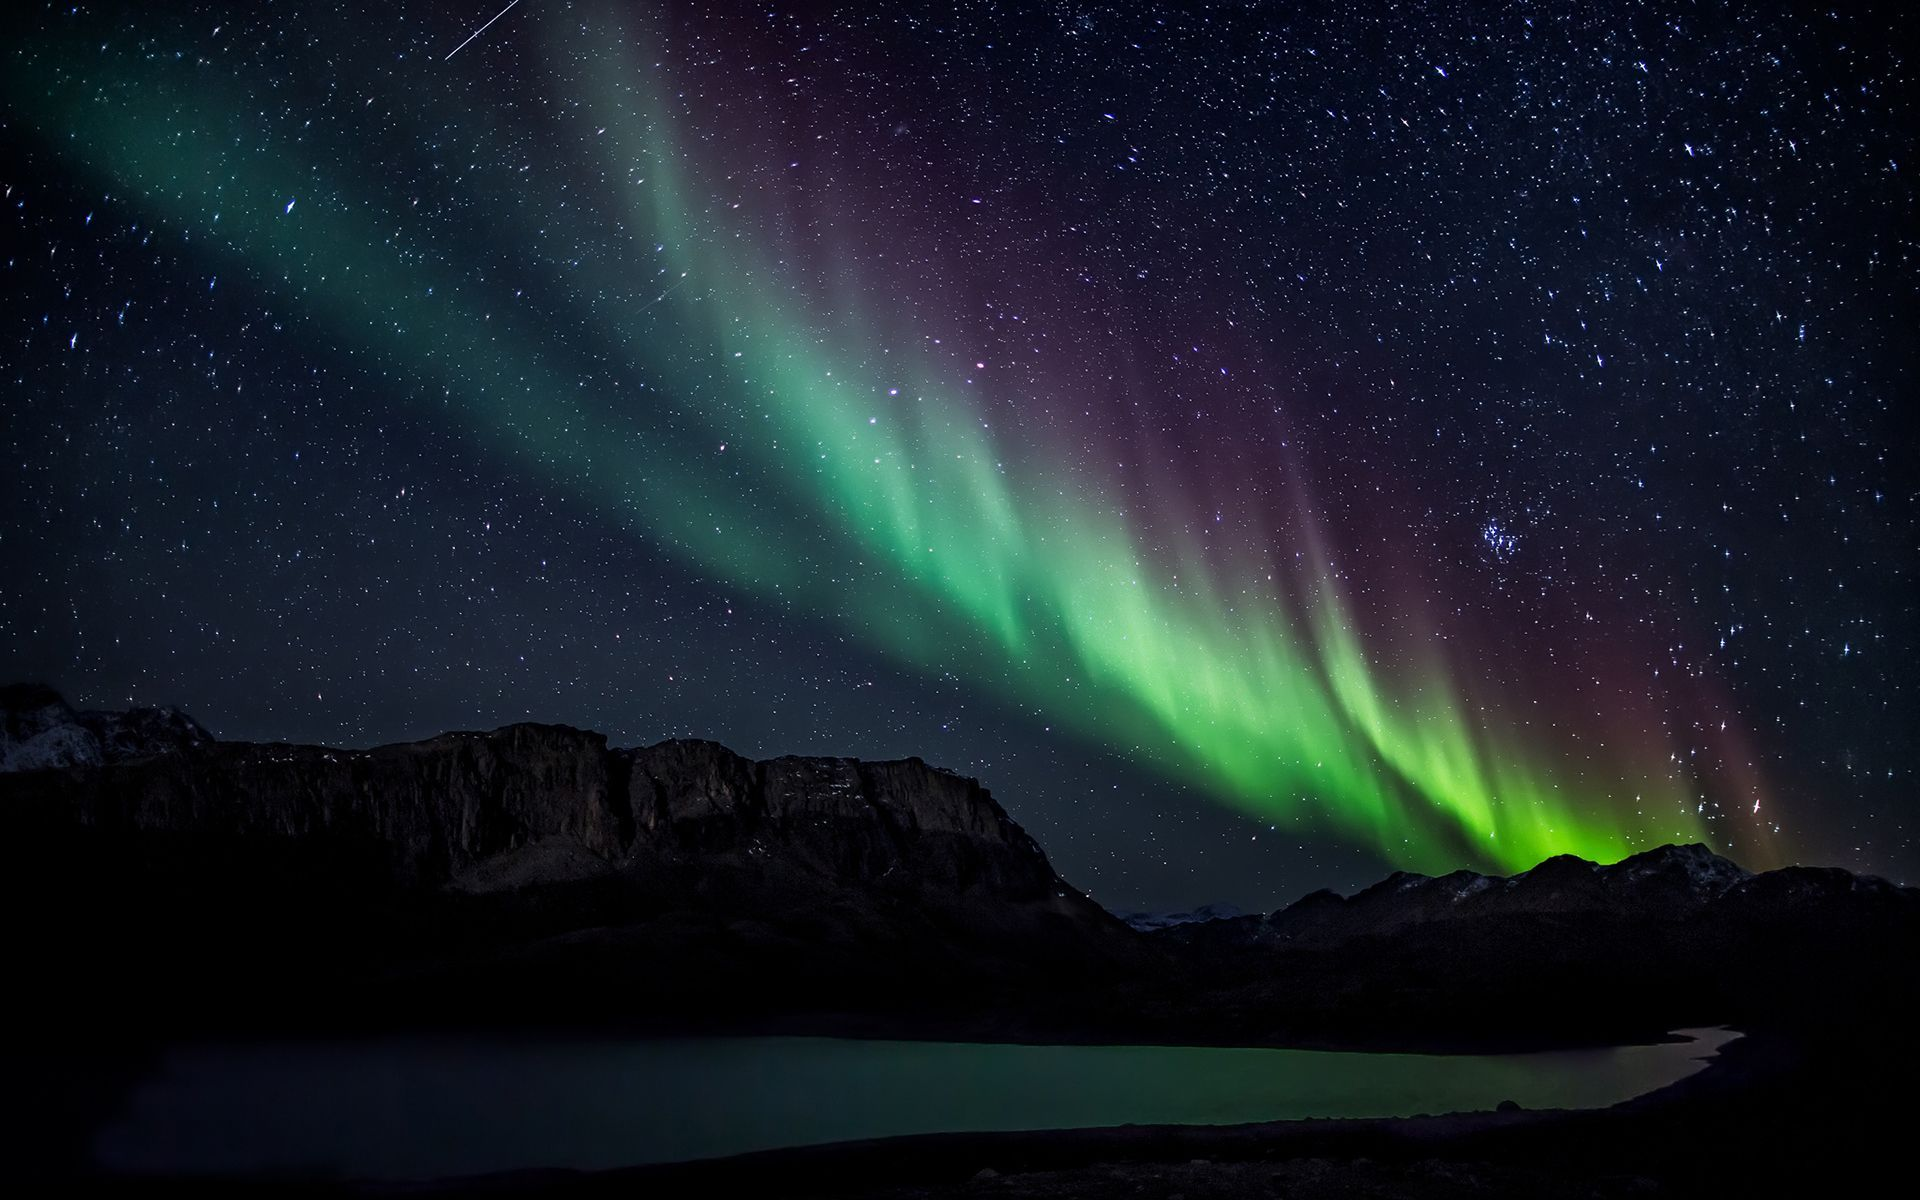 fav 0 rate 0 tweet 1920x1200 nature aurora borealis northern lights 1920x1200